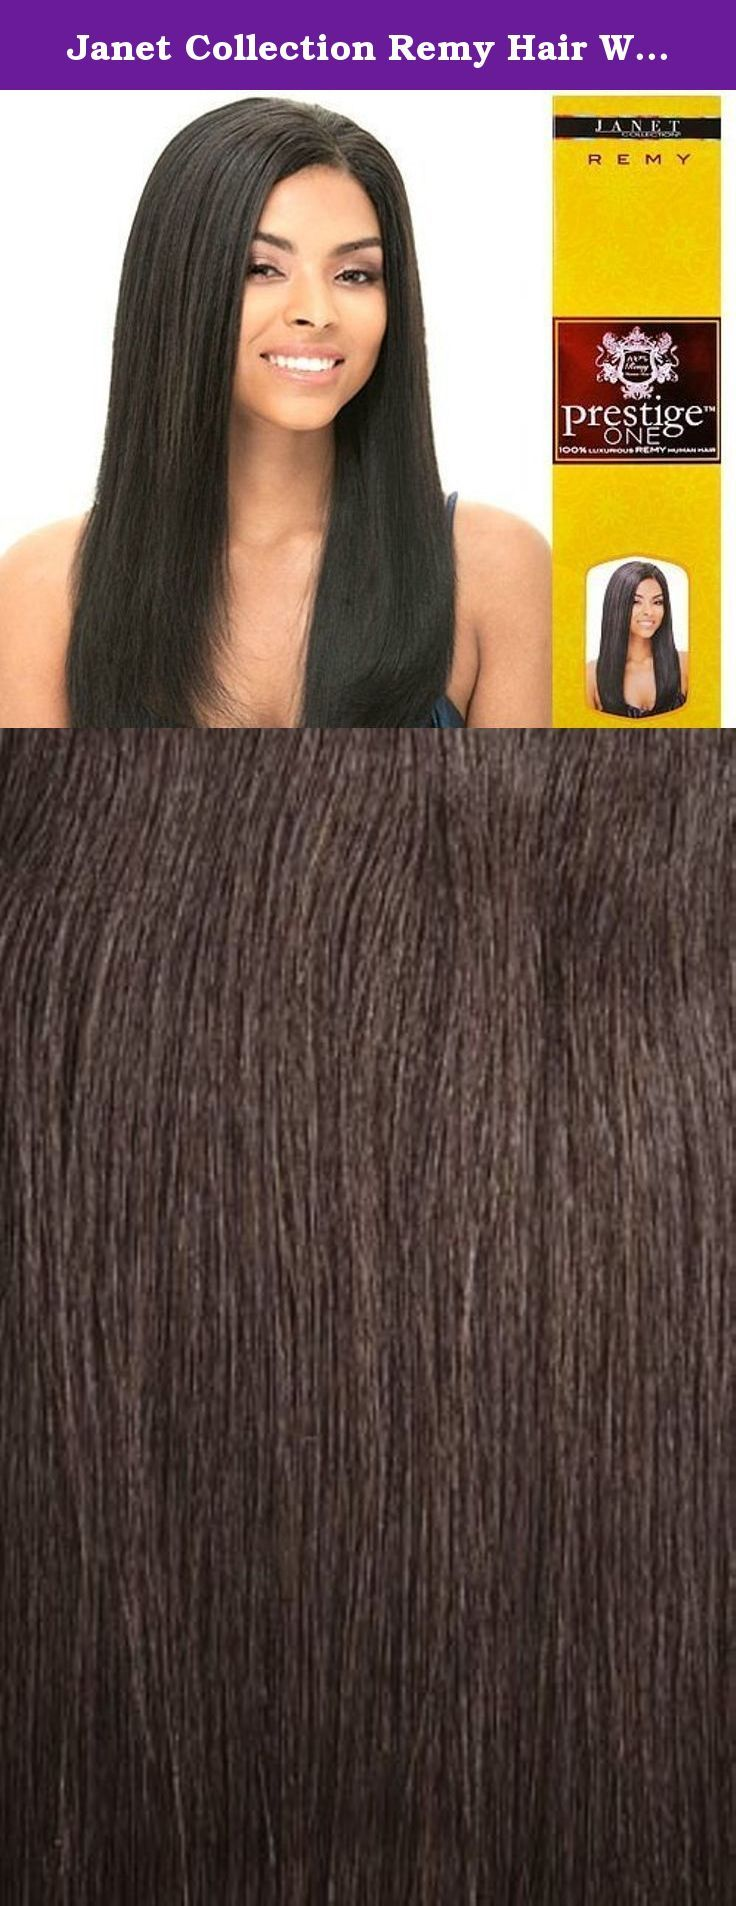 Janet Collection Remy Hair Weave Janet Collection Prestige One Alco